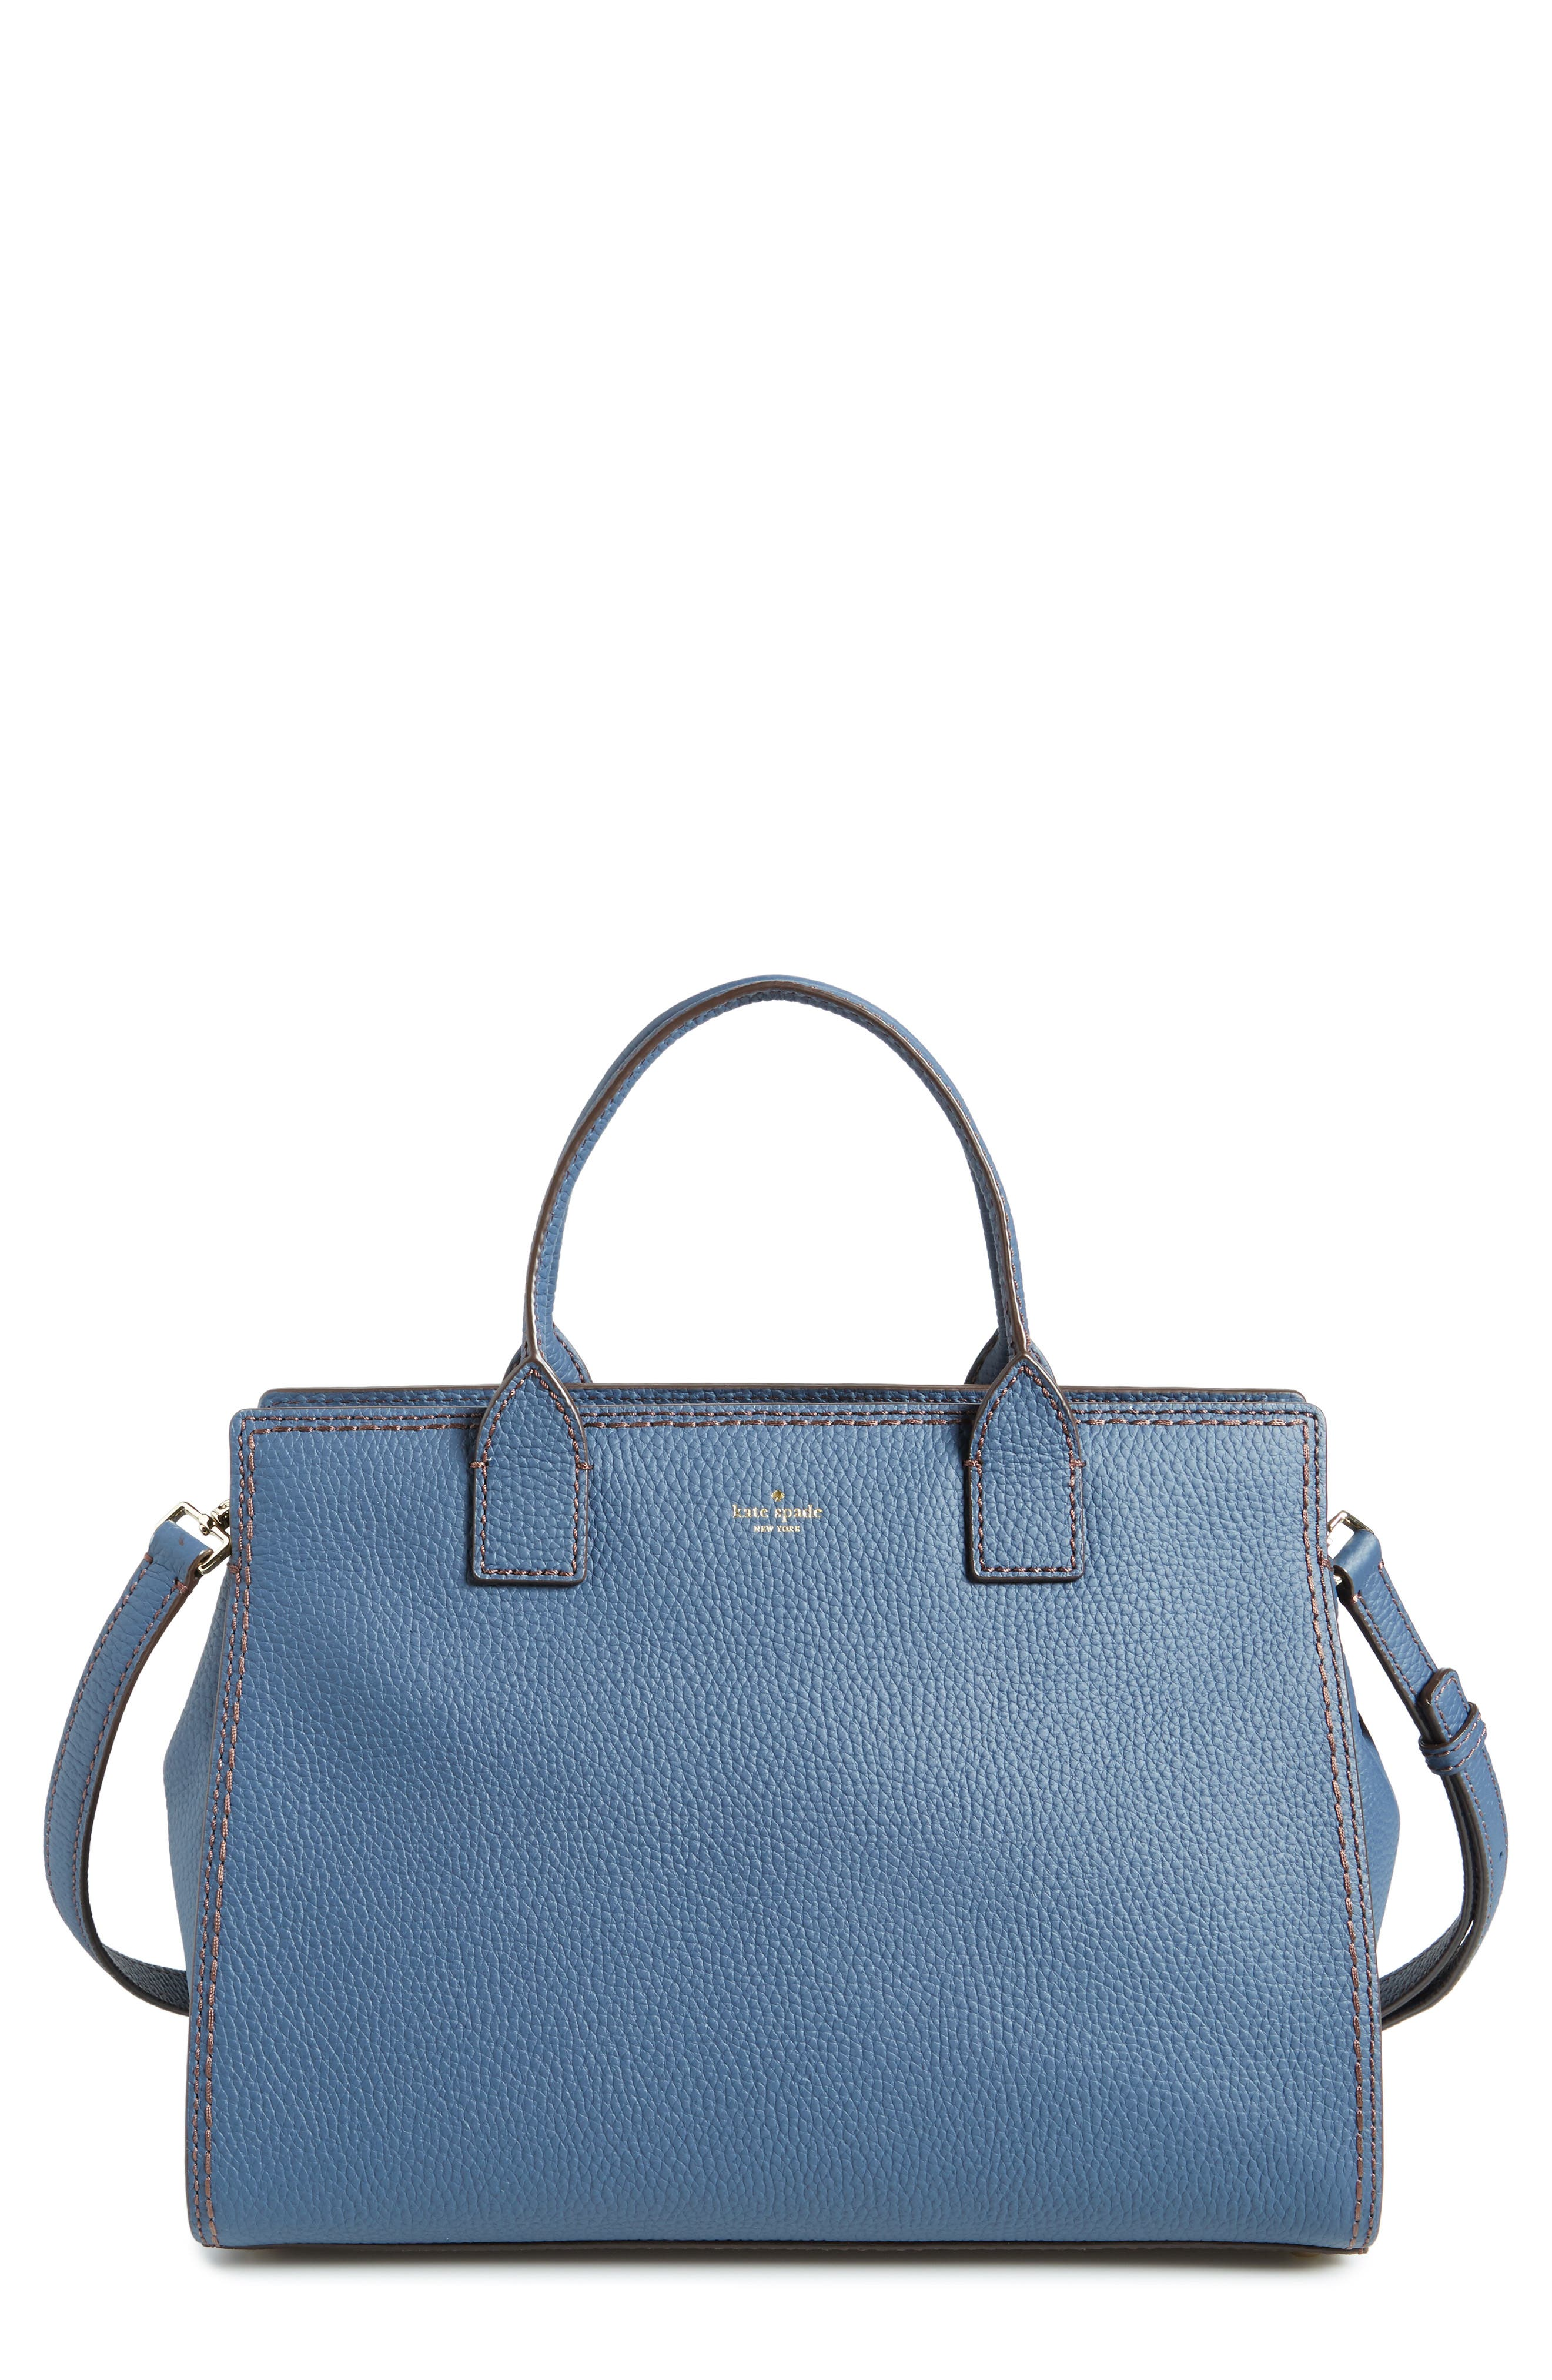 Blue Satchel Purses Amp Handbags Nordstrom